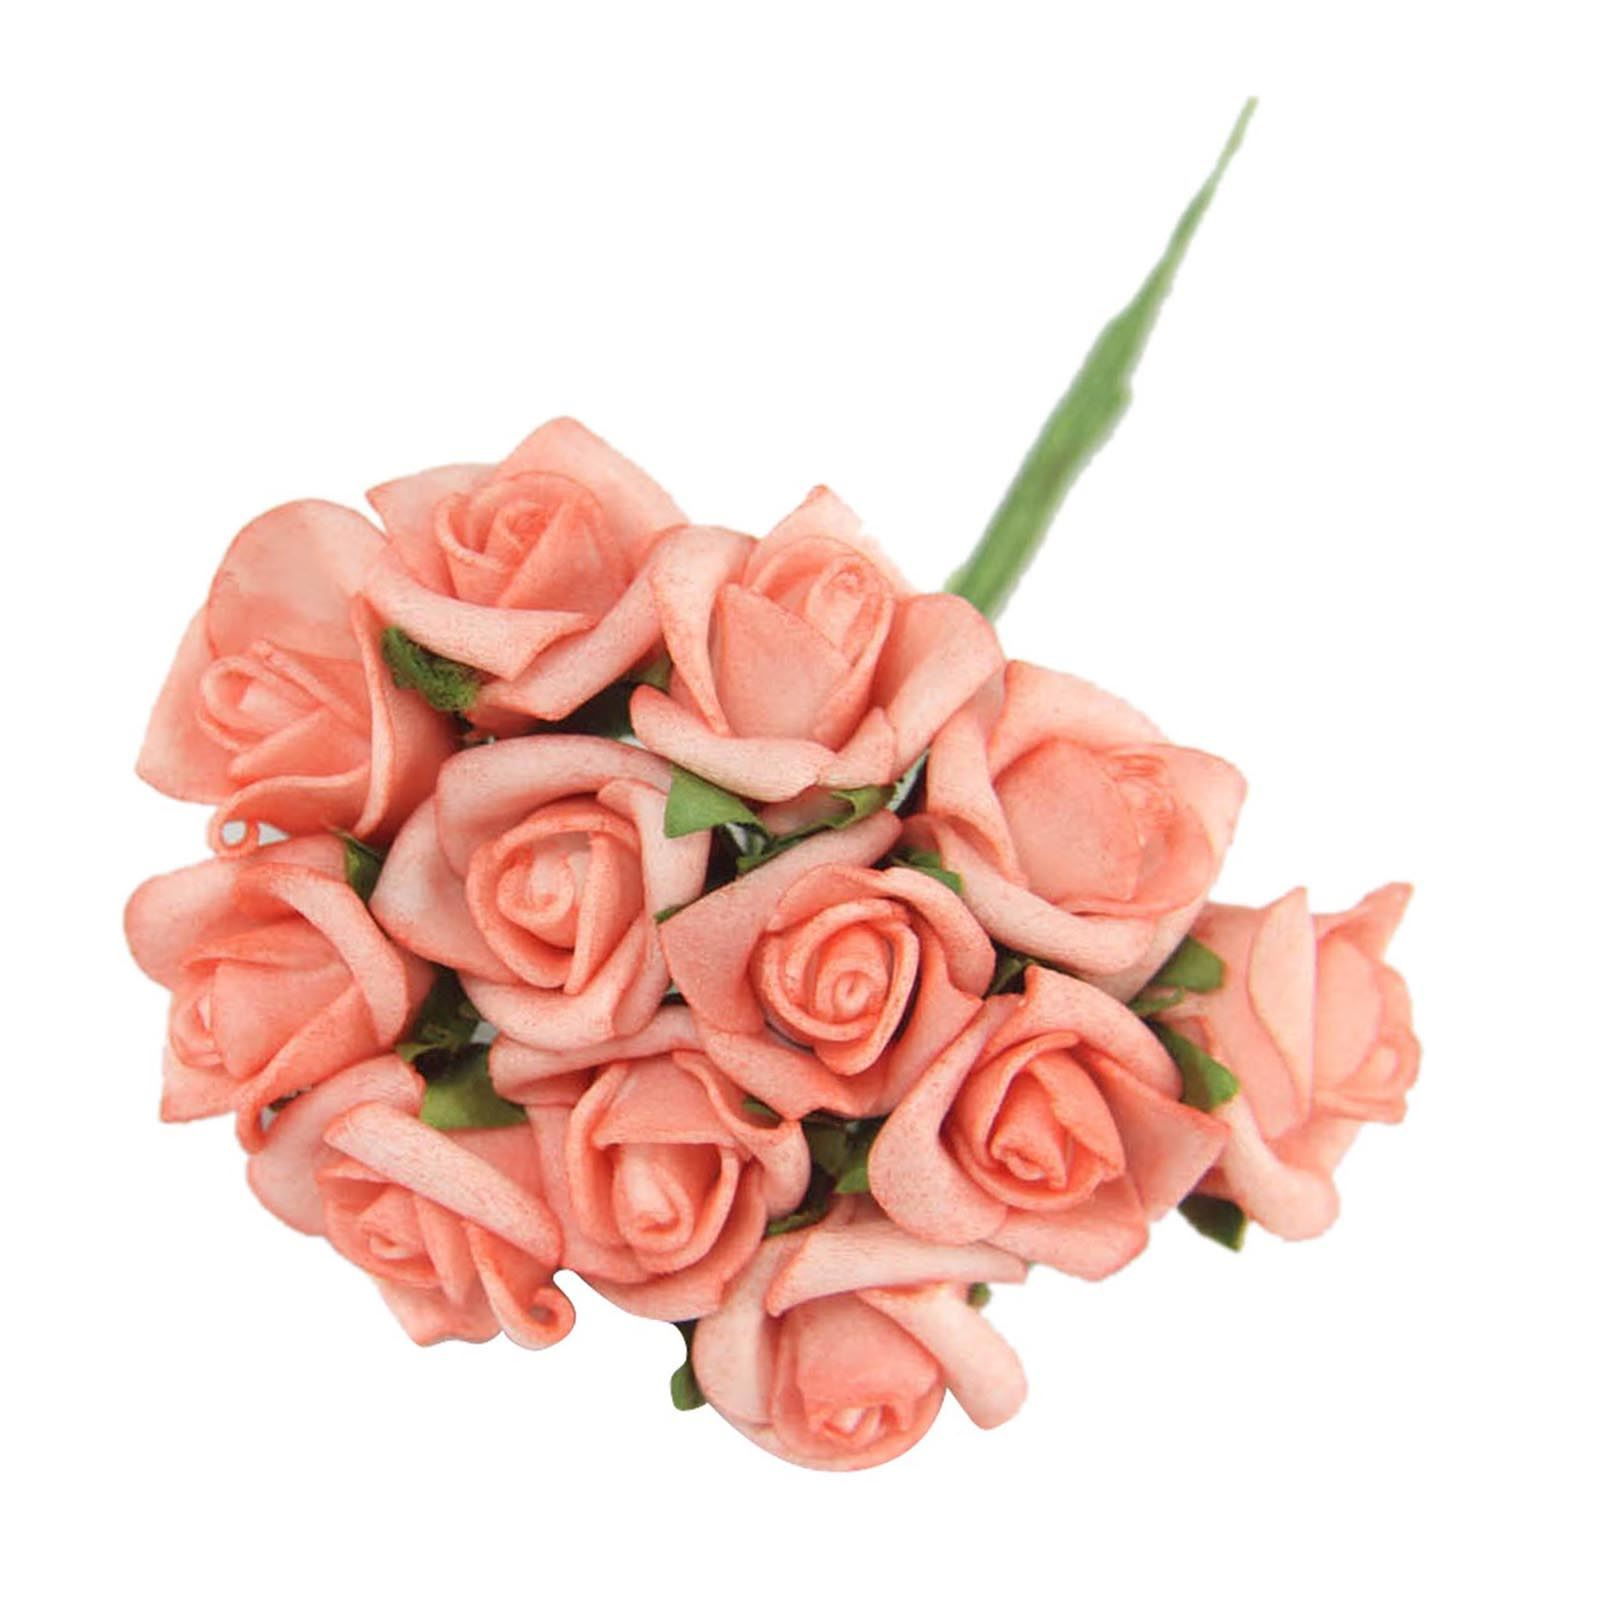 Home bulk roses peach roses - Bundles Of 12 Mini Foam Rose Bunches Bulk